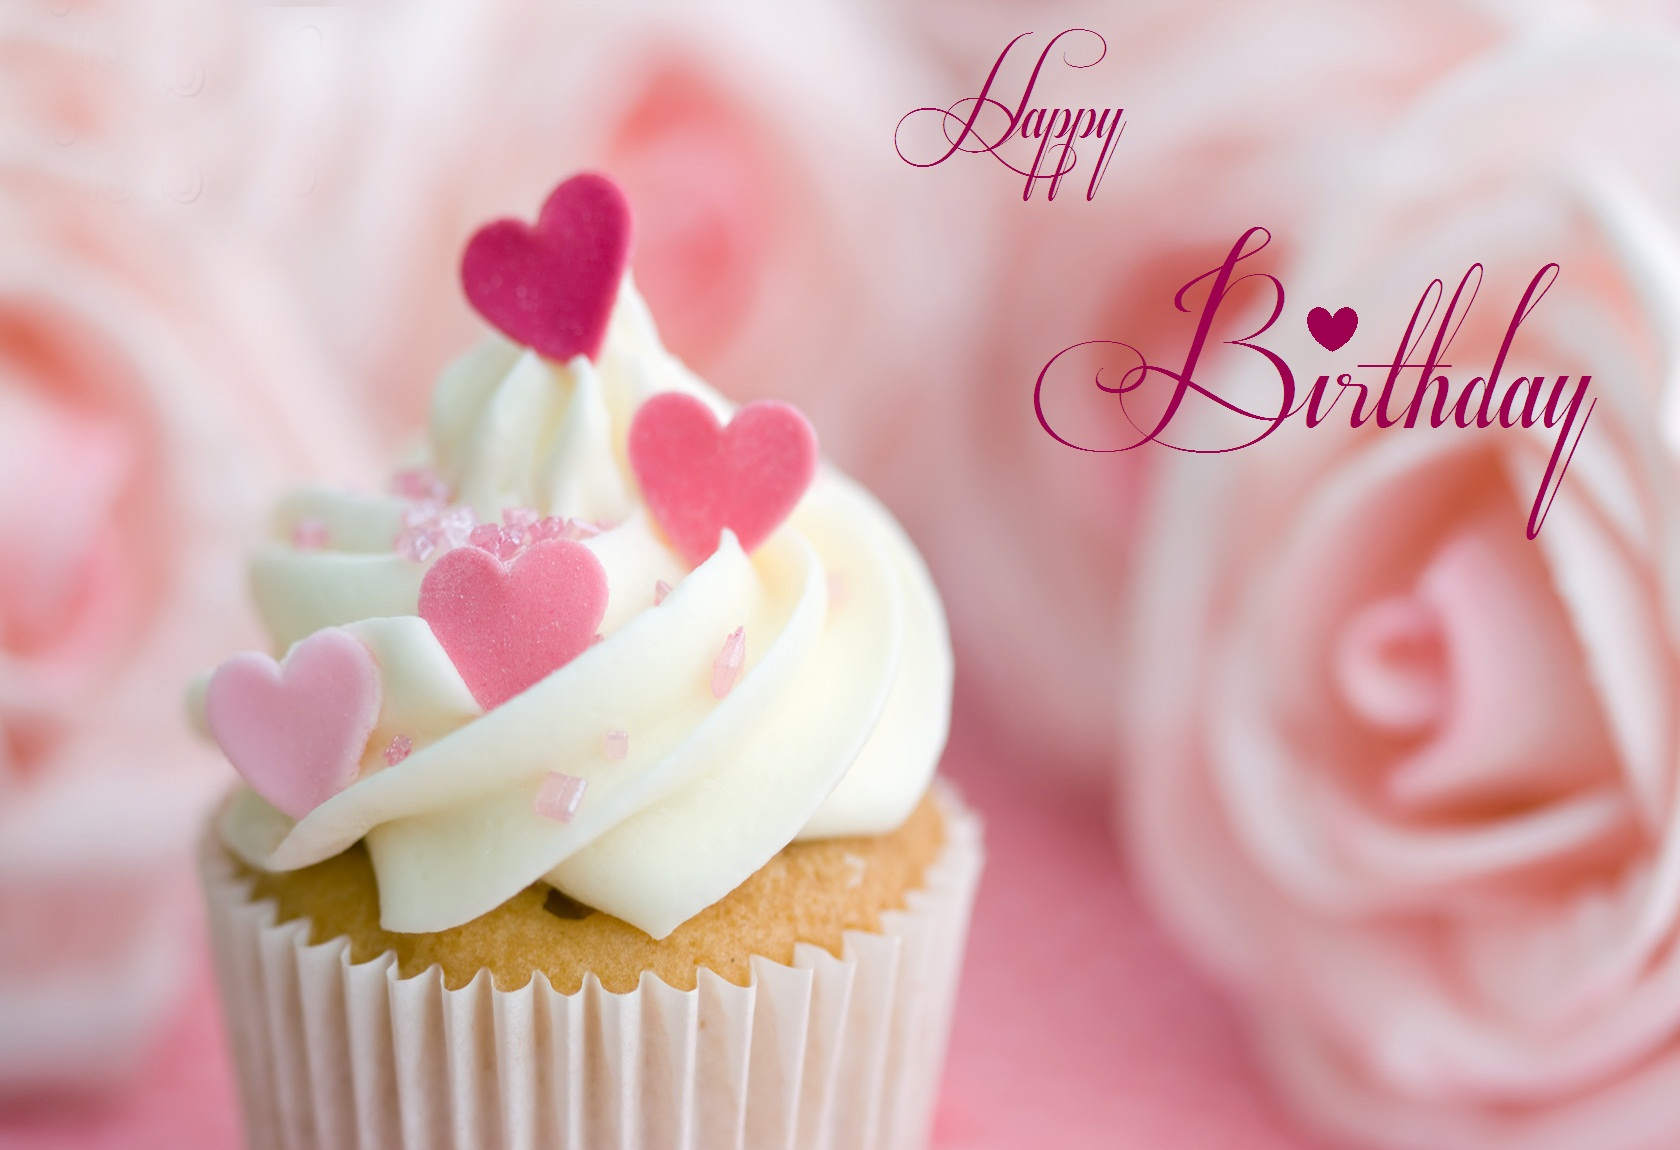 happy bday image download ; Happy-Bday-Images-Wallpapers-064